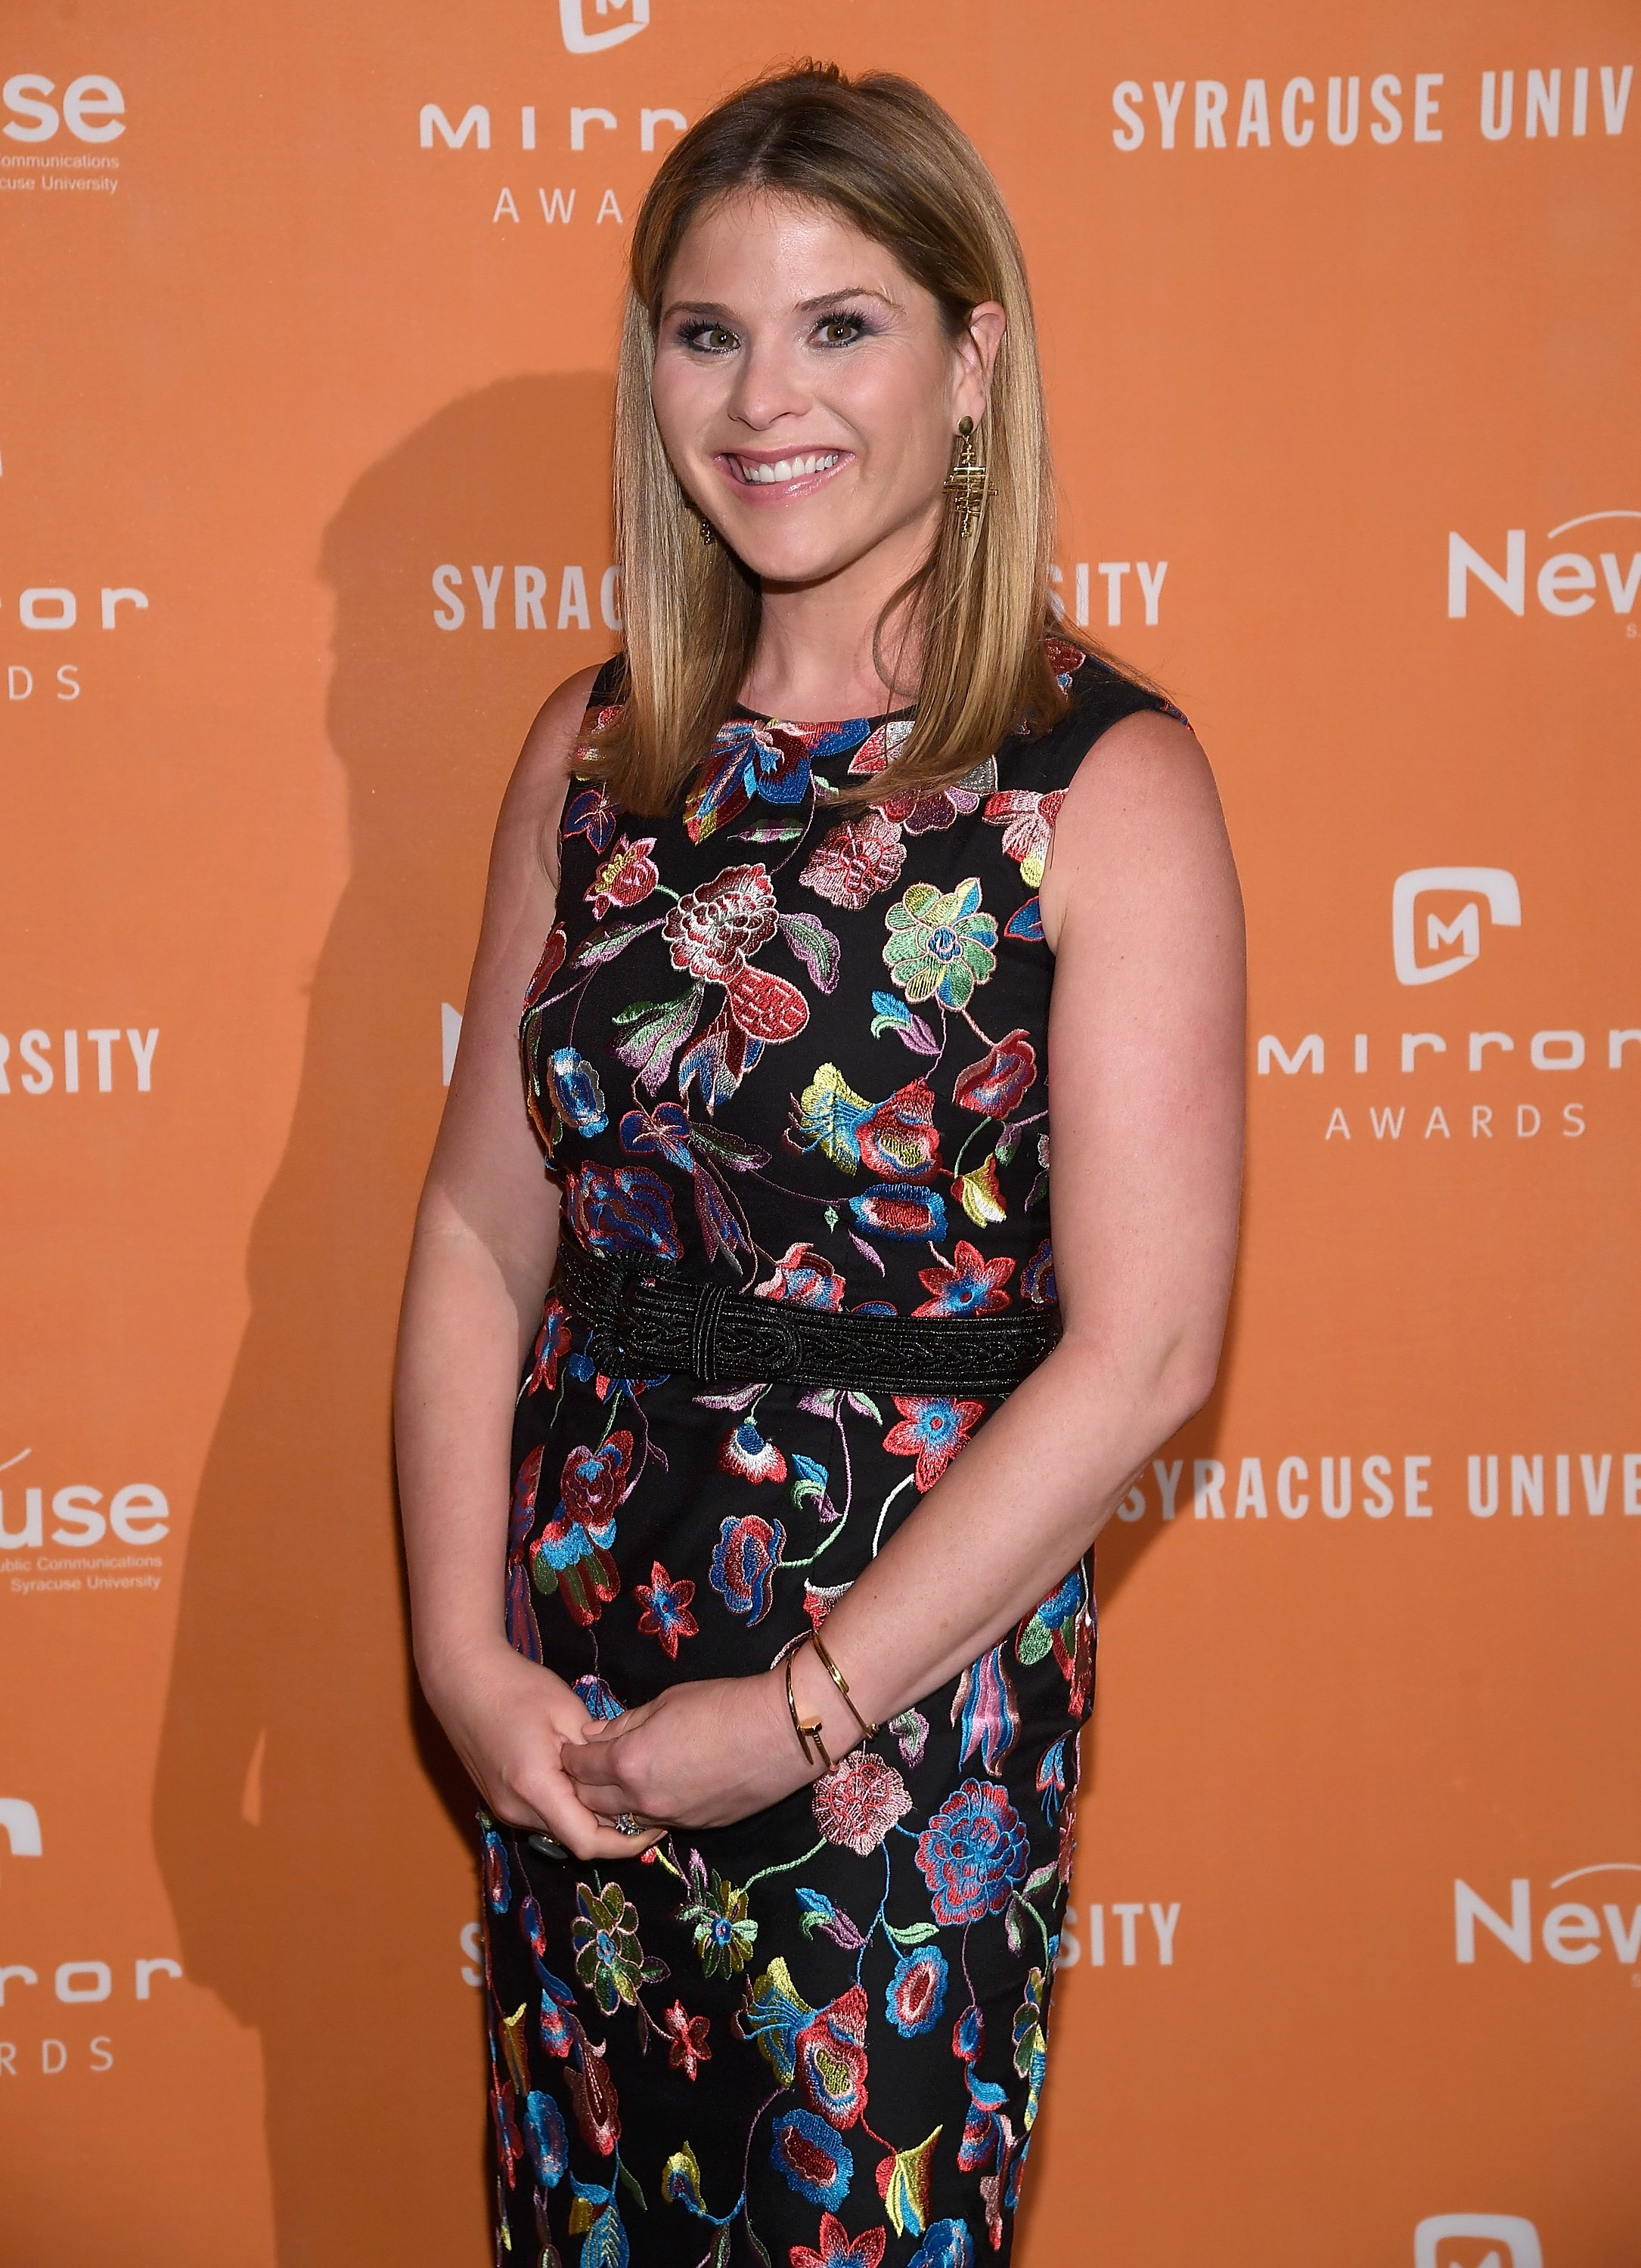 Jenna Bush Hager attends the Mirror Awards in New York City on June 13, 2017 | Photo: Getty Images